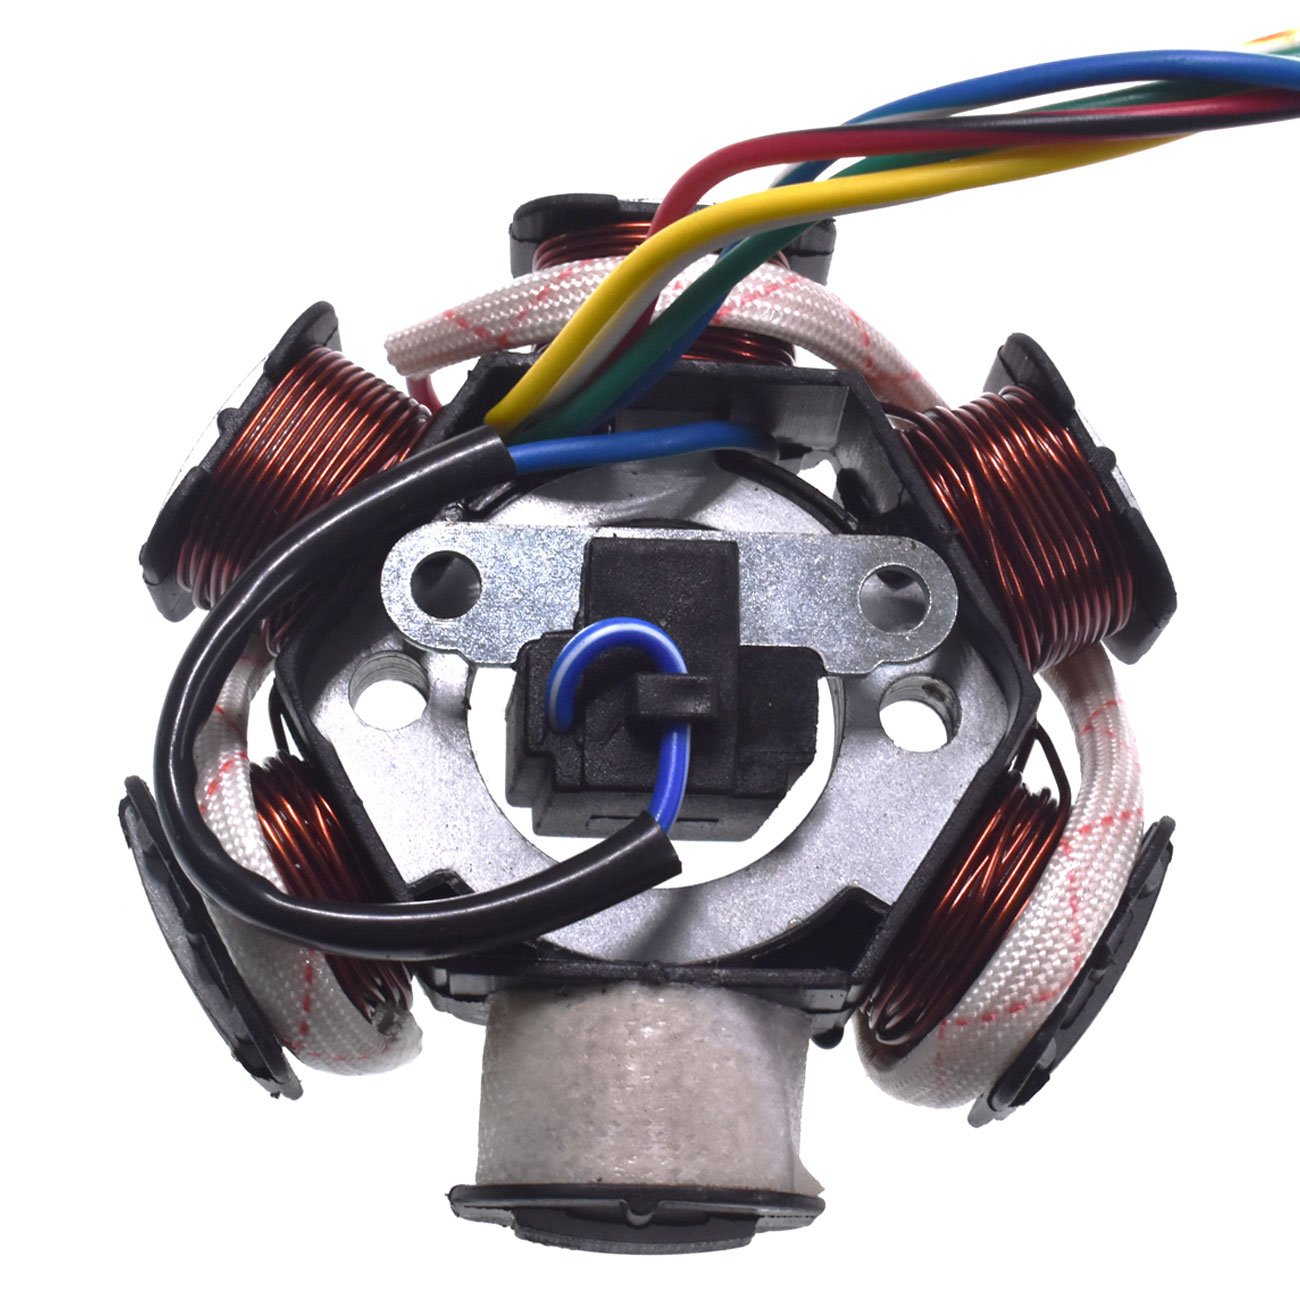 Diy Auto Wiring Harnesswire Loom Manufacturing Wire Cable Assembly Jrl Harness Stator Electrics For Gy6 150cc 125cc Buggy Scooter Car Motorbike